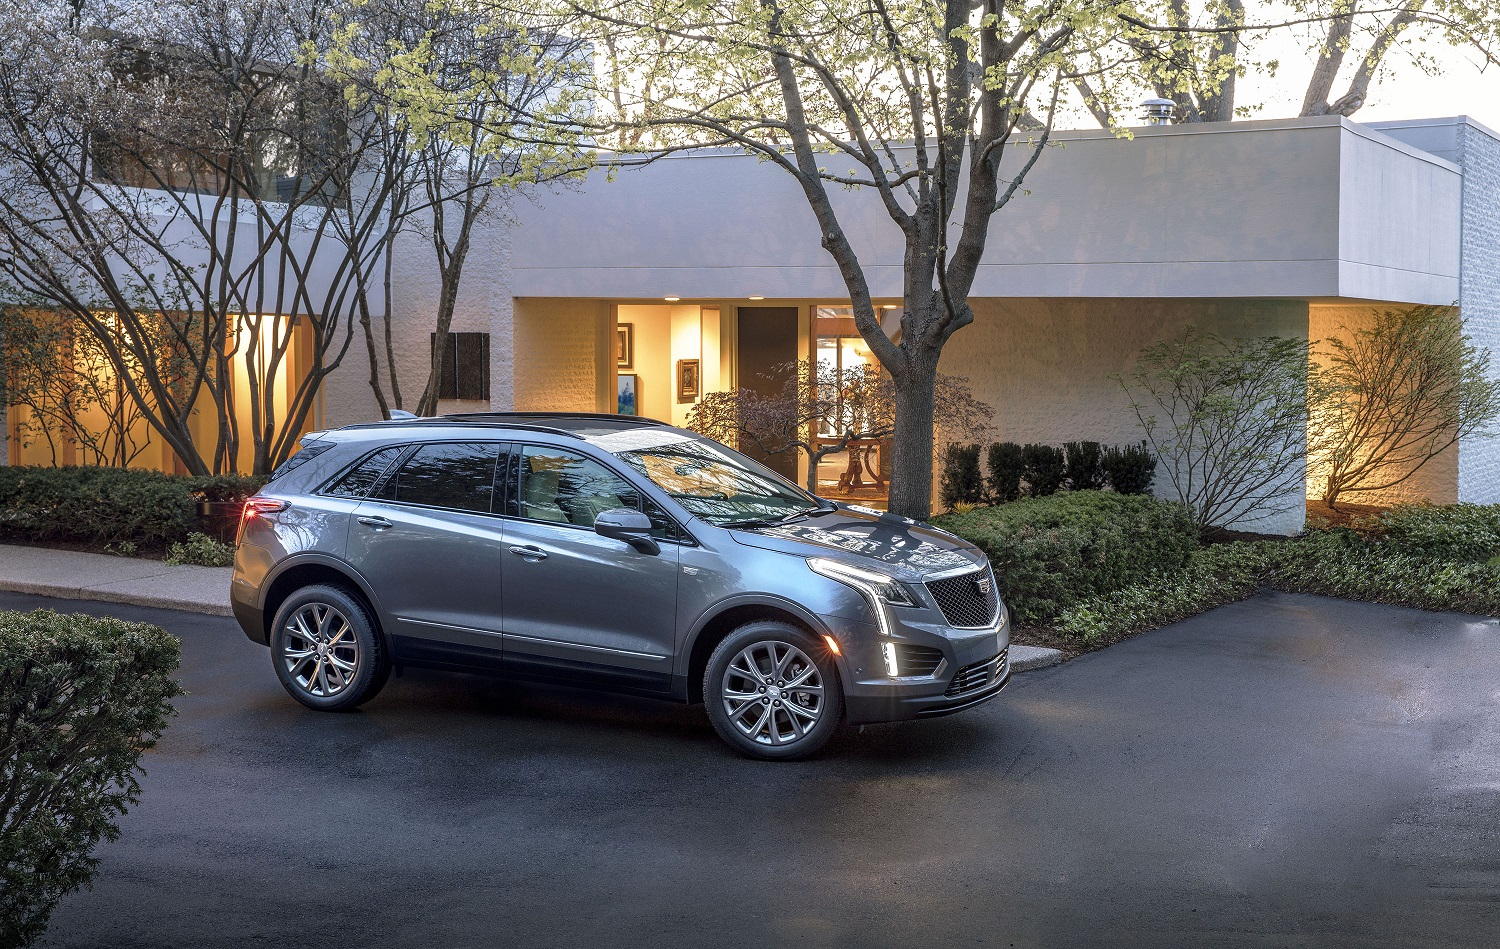 2021 cadillac xt5 hybrid specs and mileage  2020 best suv